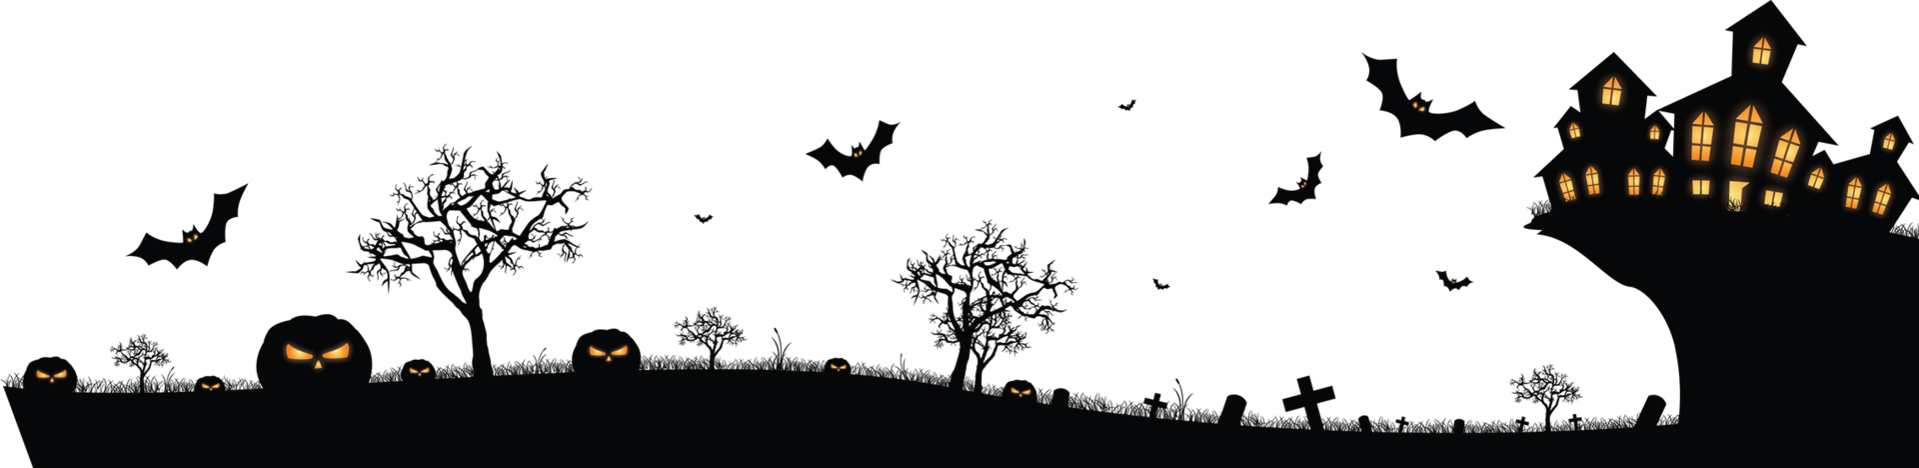 1600949602-halloween-background